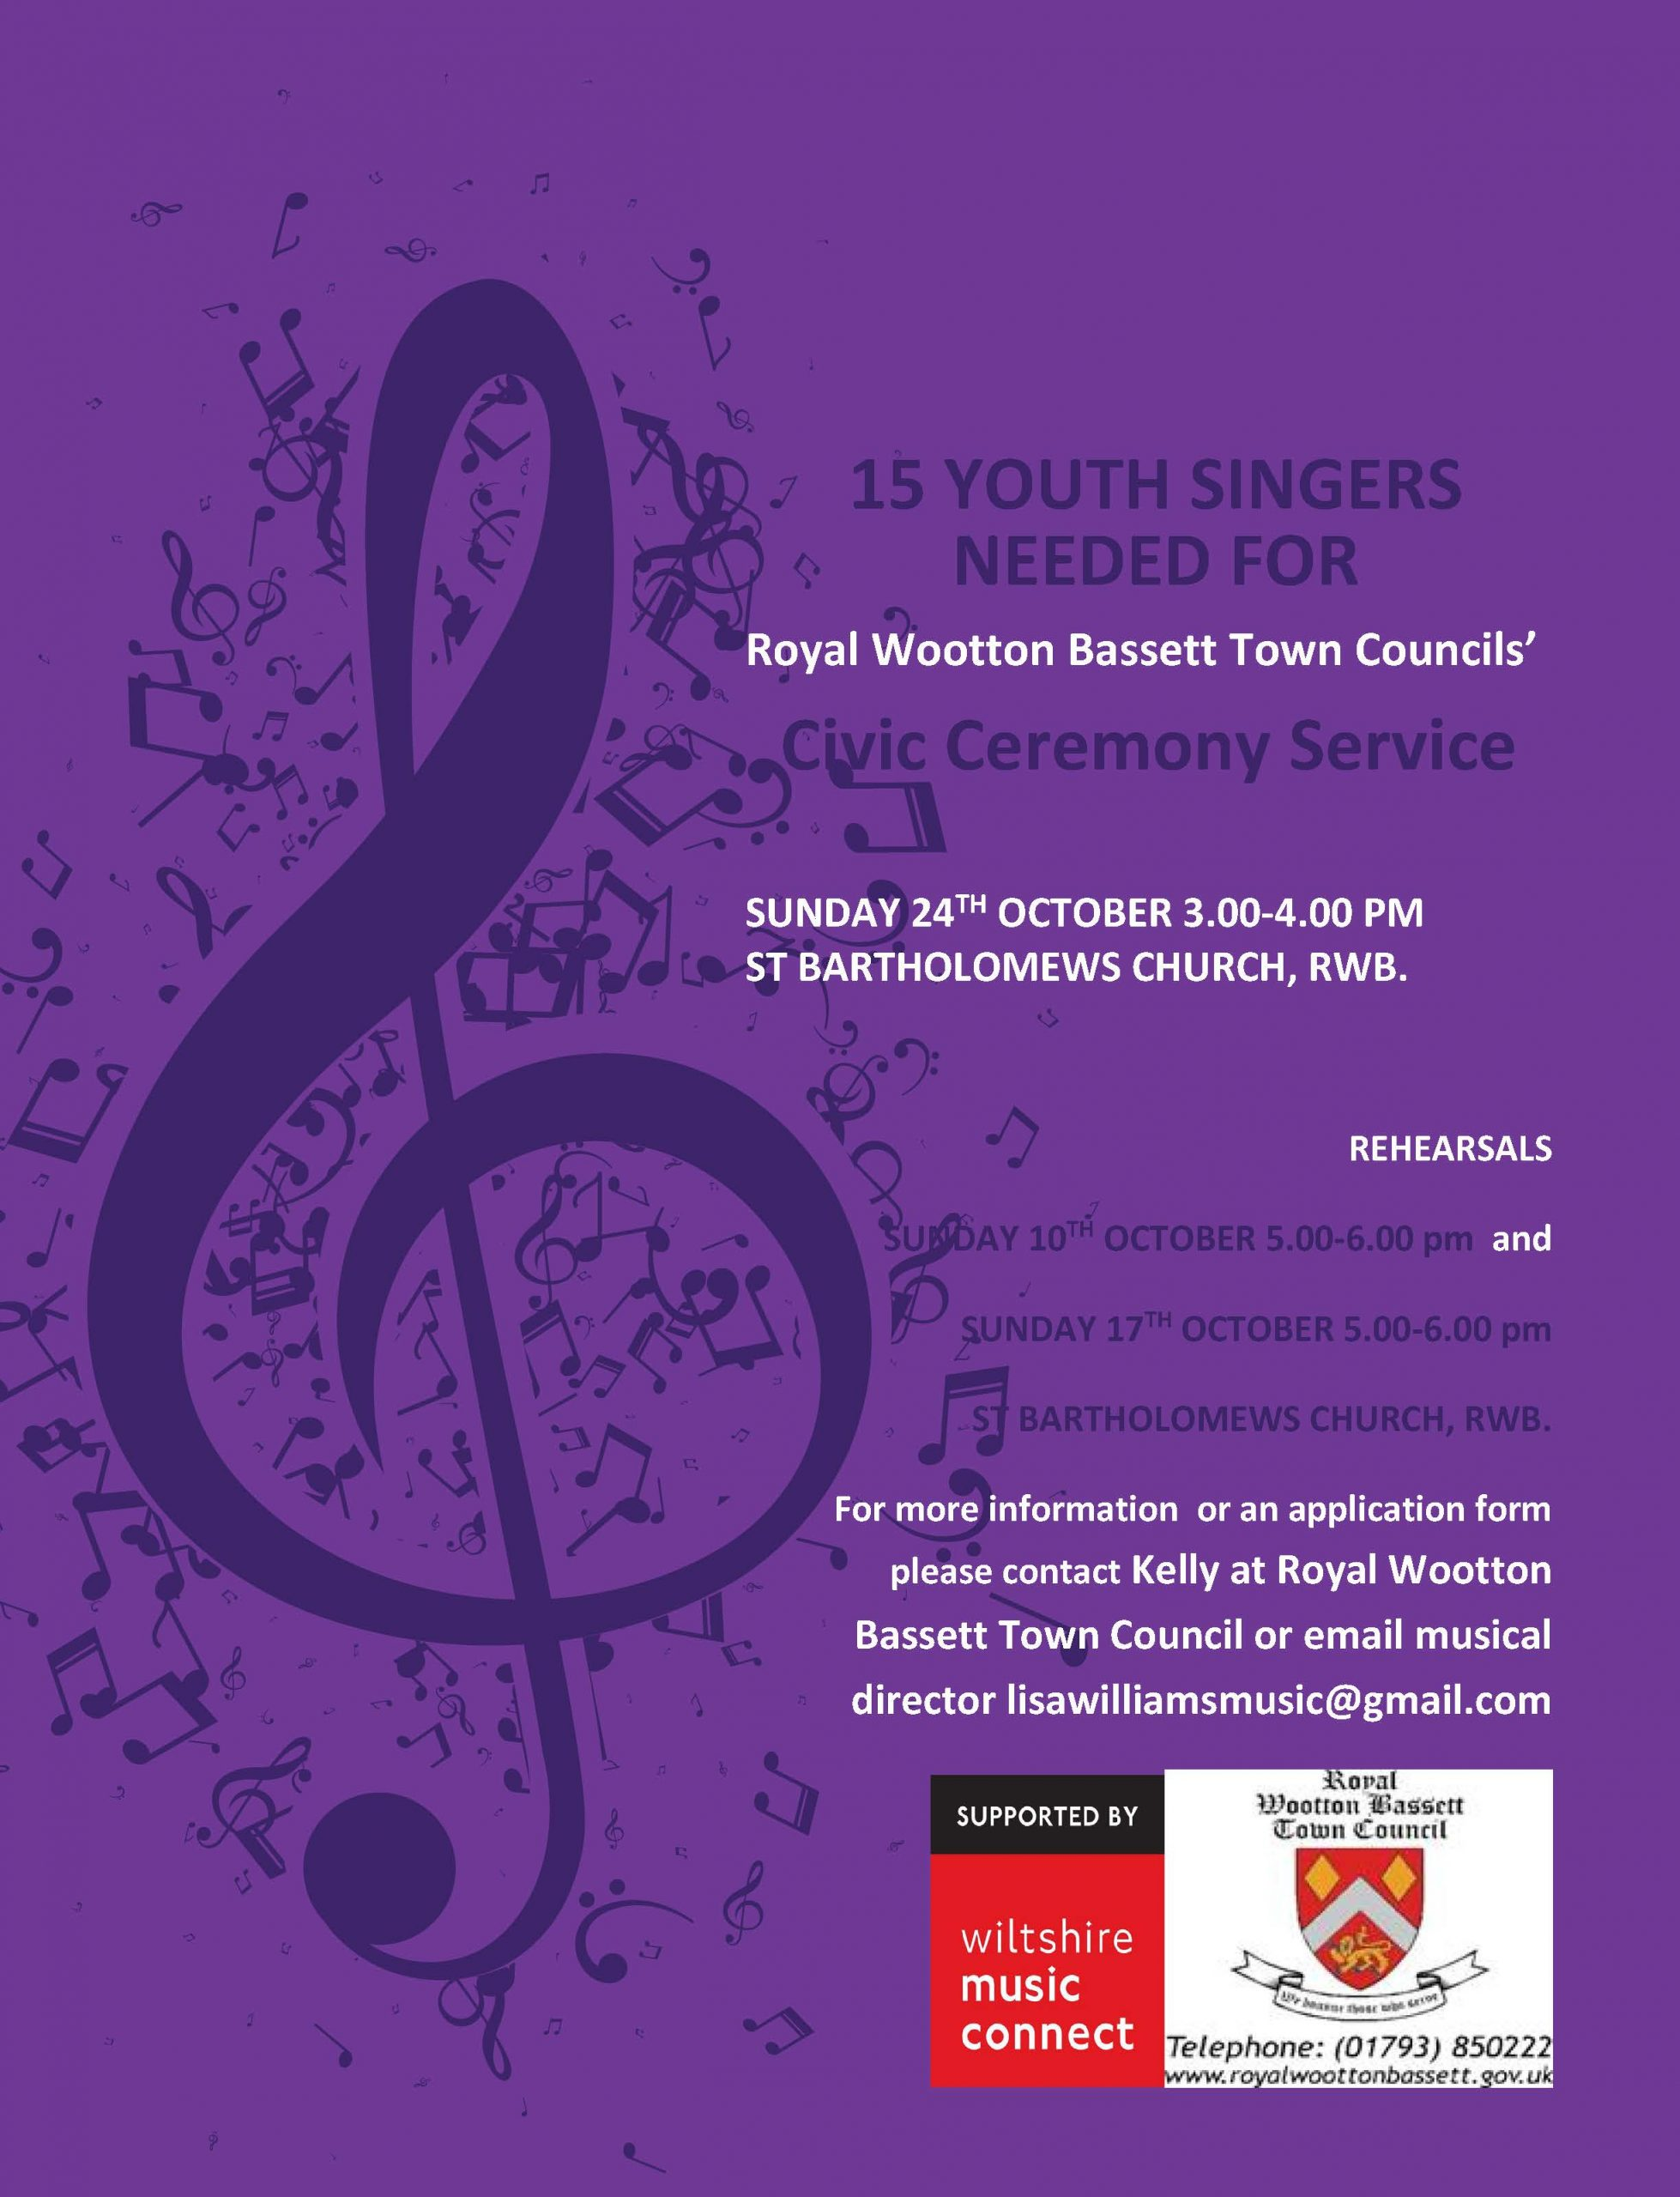 Youth Singers Wanted Flyer